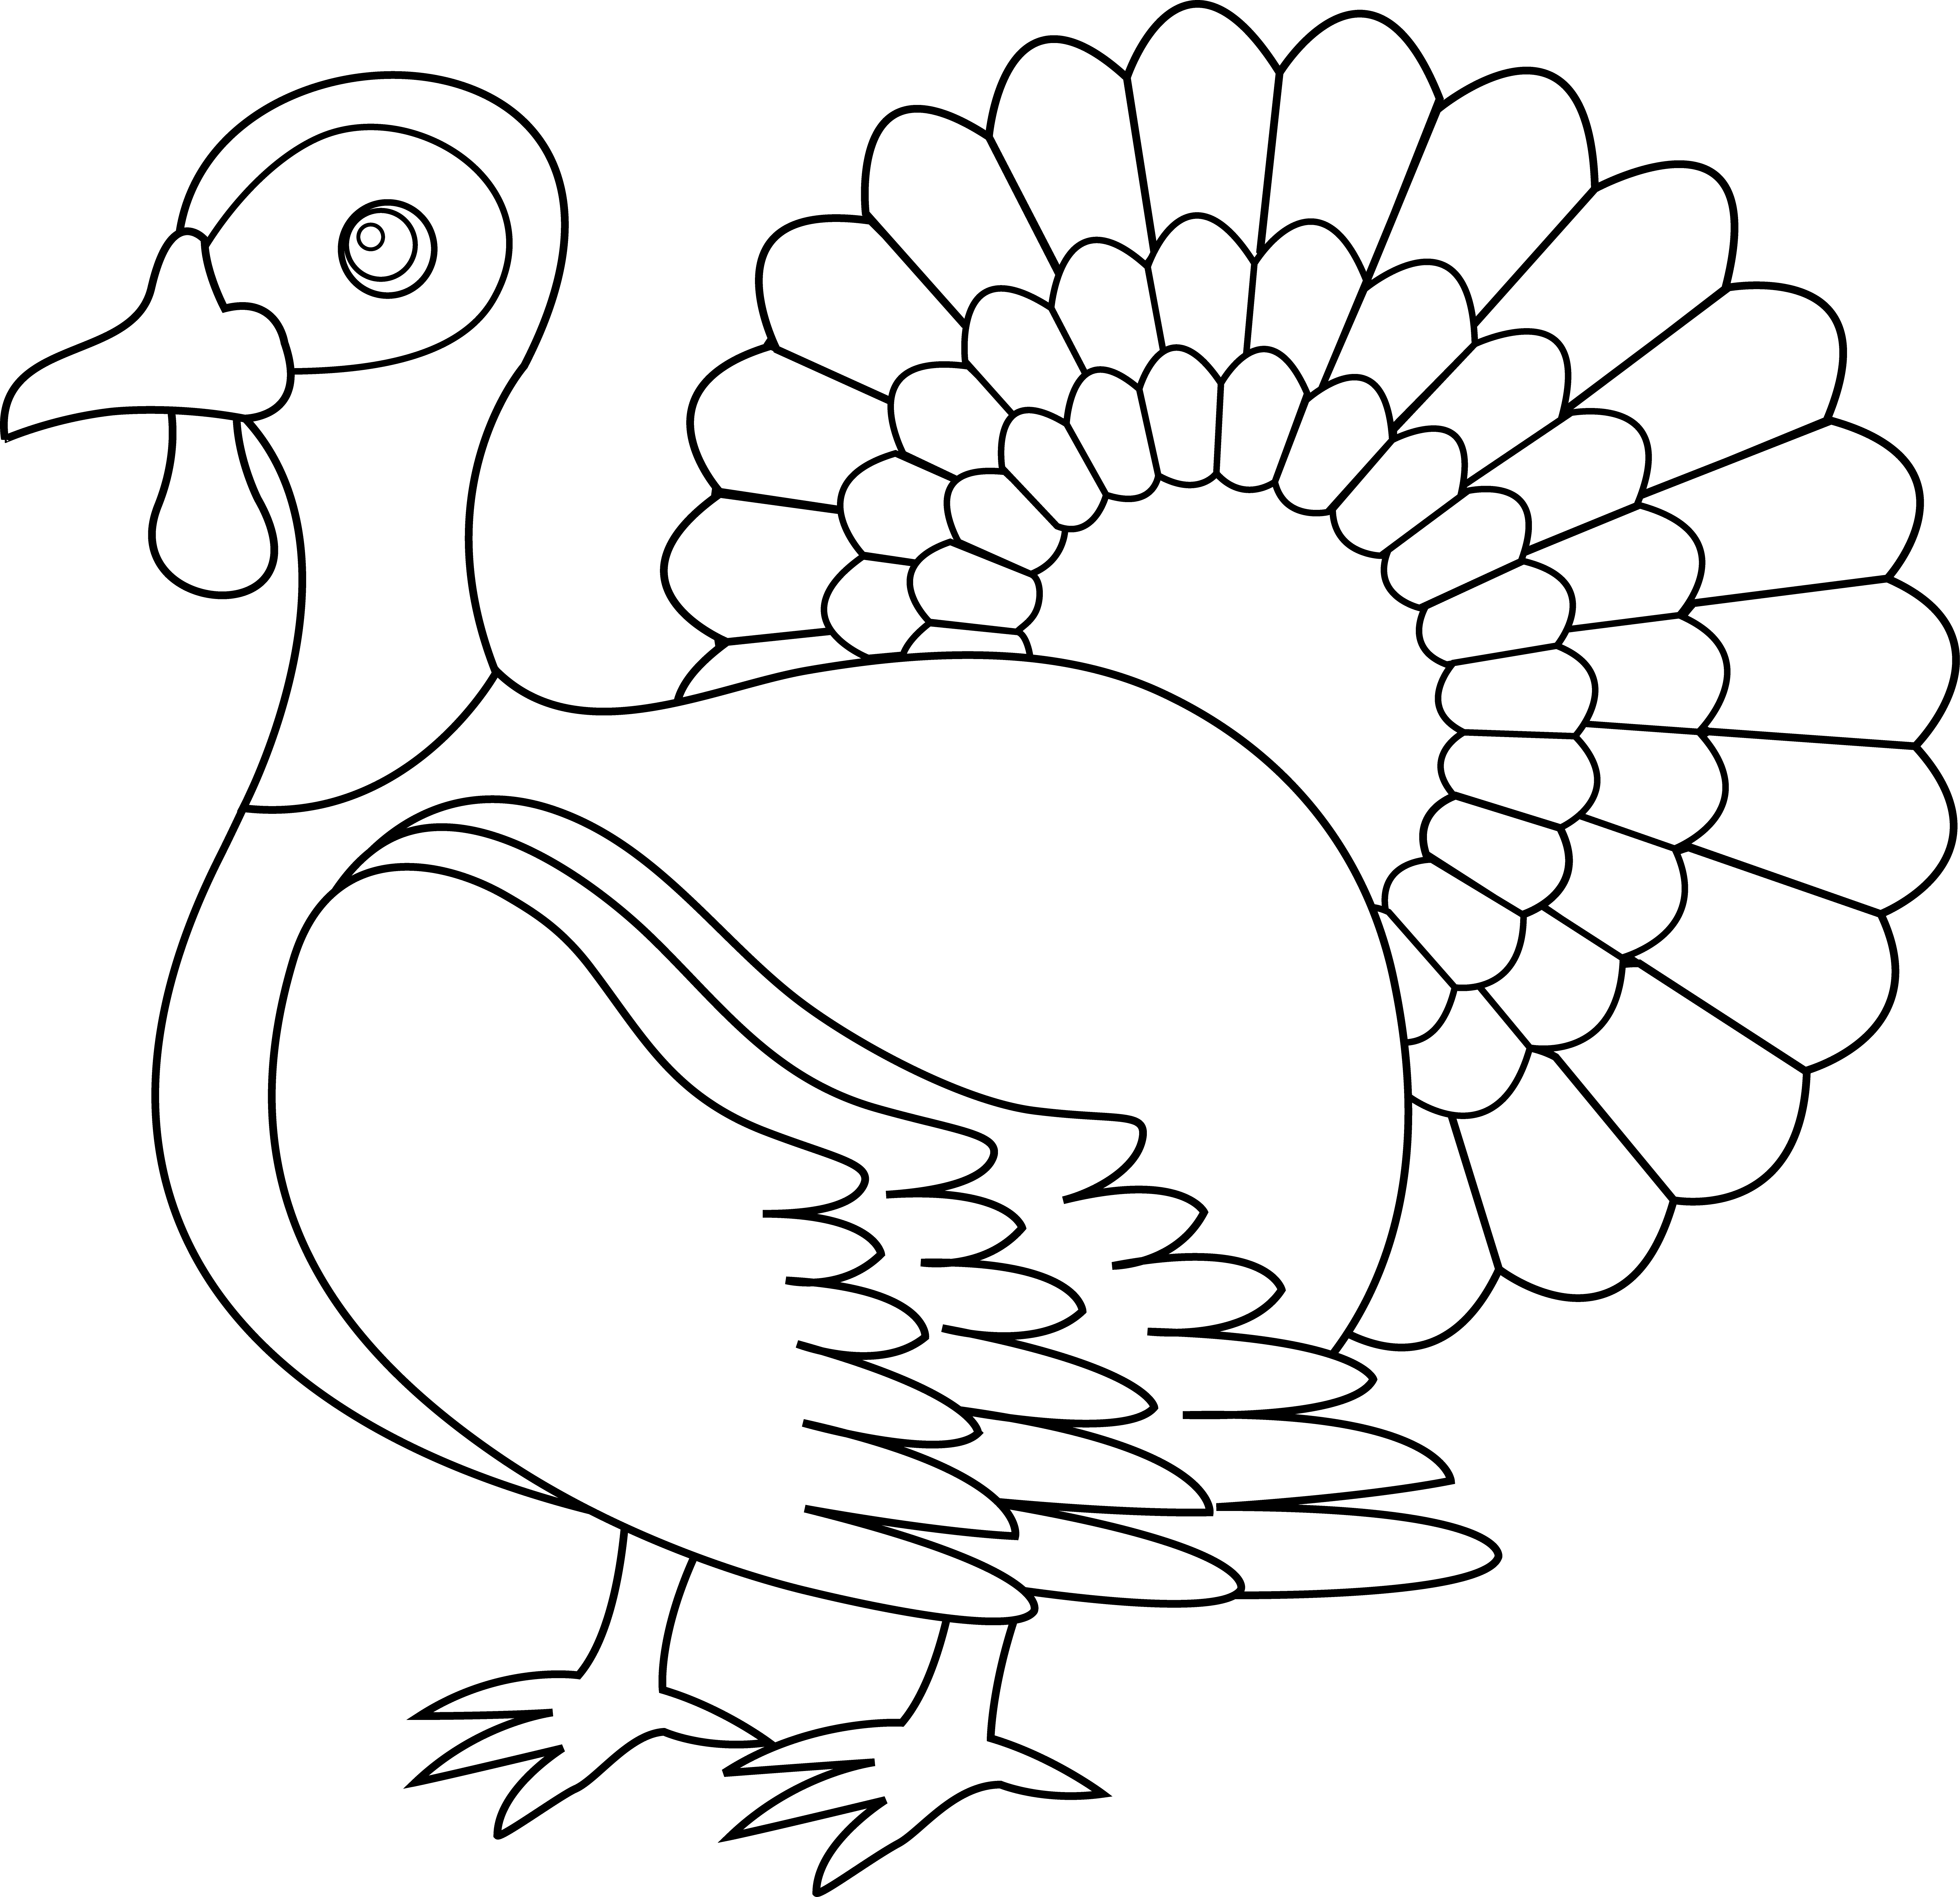 Clipart black and white turkey picture library stock 28+ Collection of Turkey Clipart Png Black And White | High quality ... picture library stock